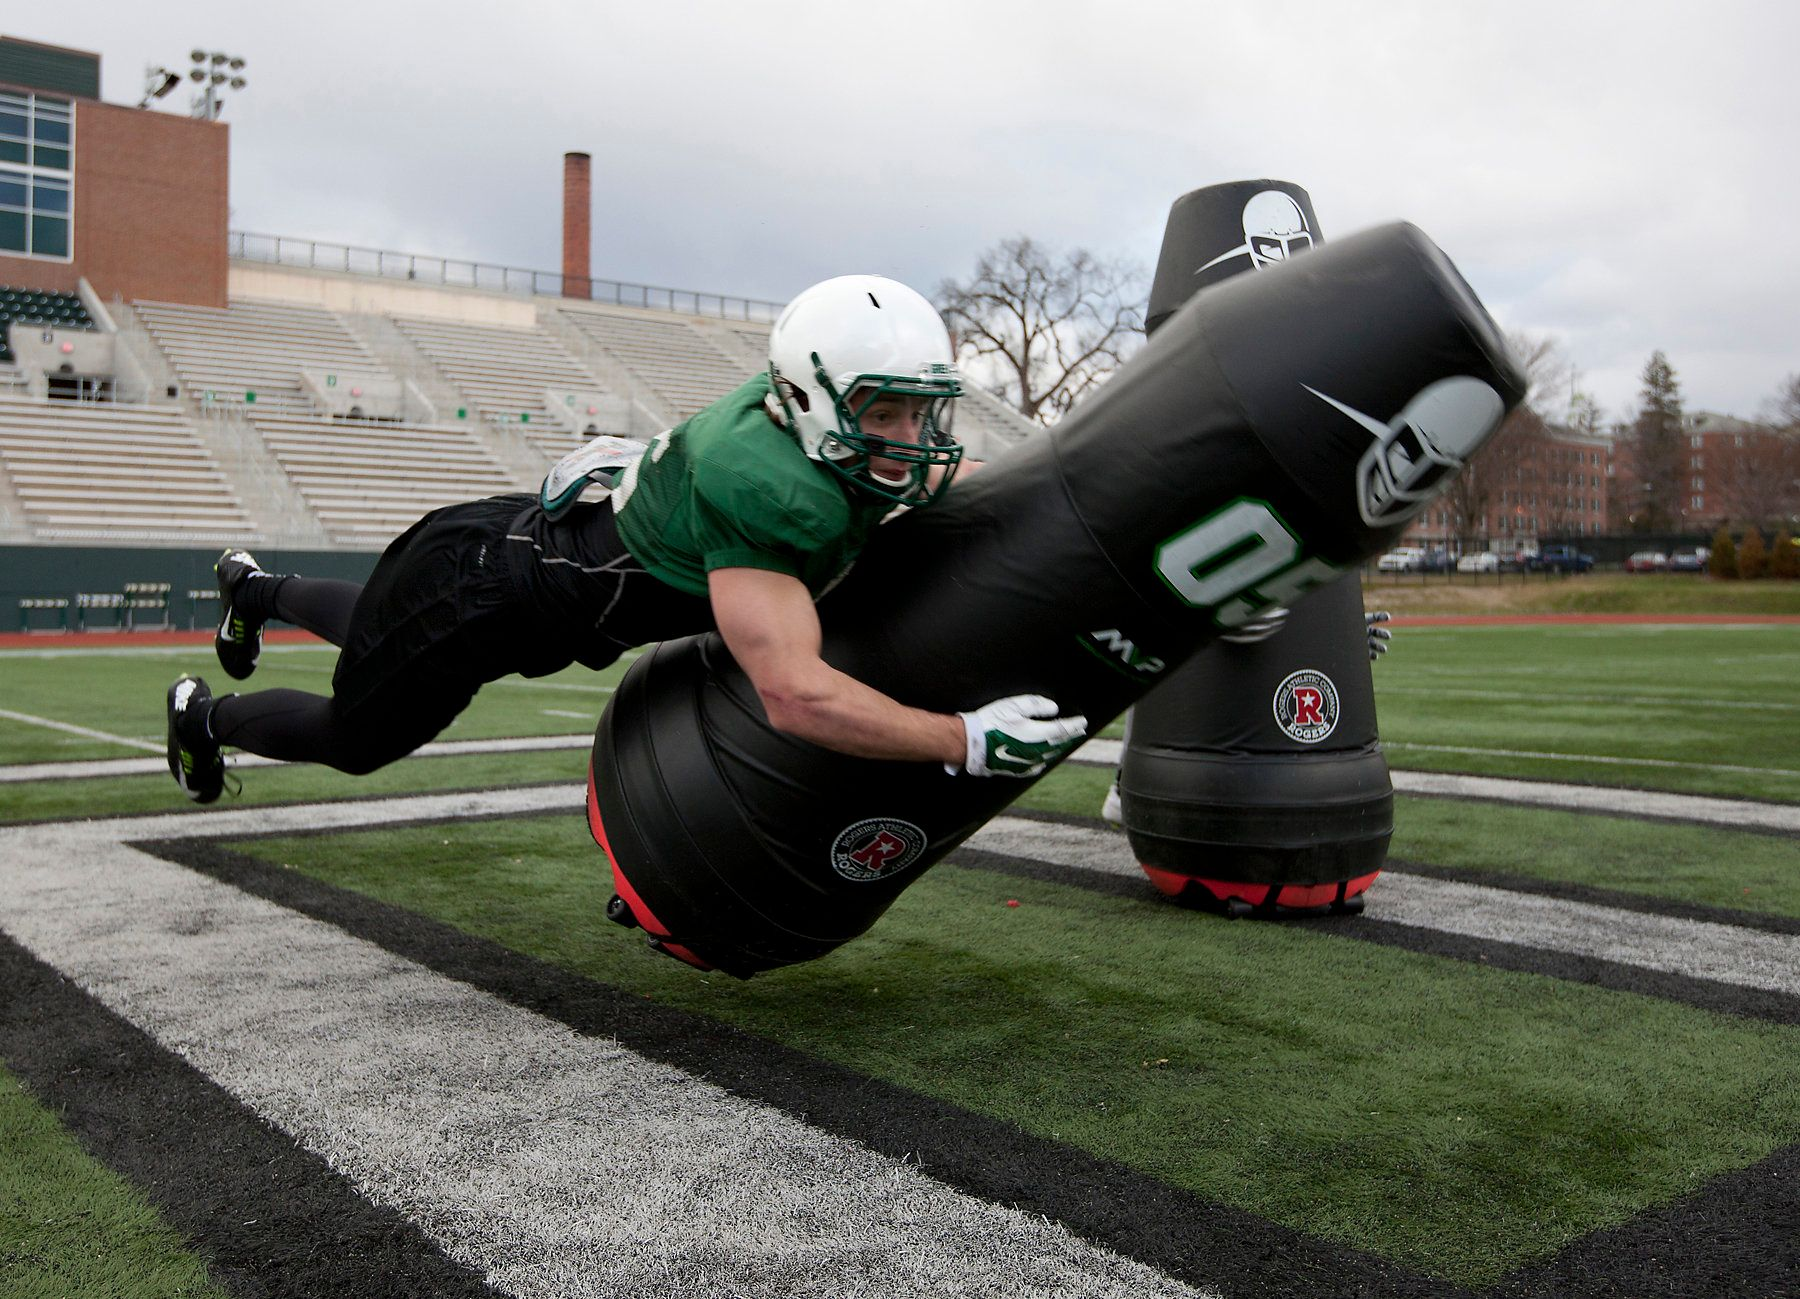 Tackle This Football S Newest Most Valuable Player Is A Robot